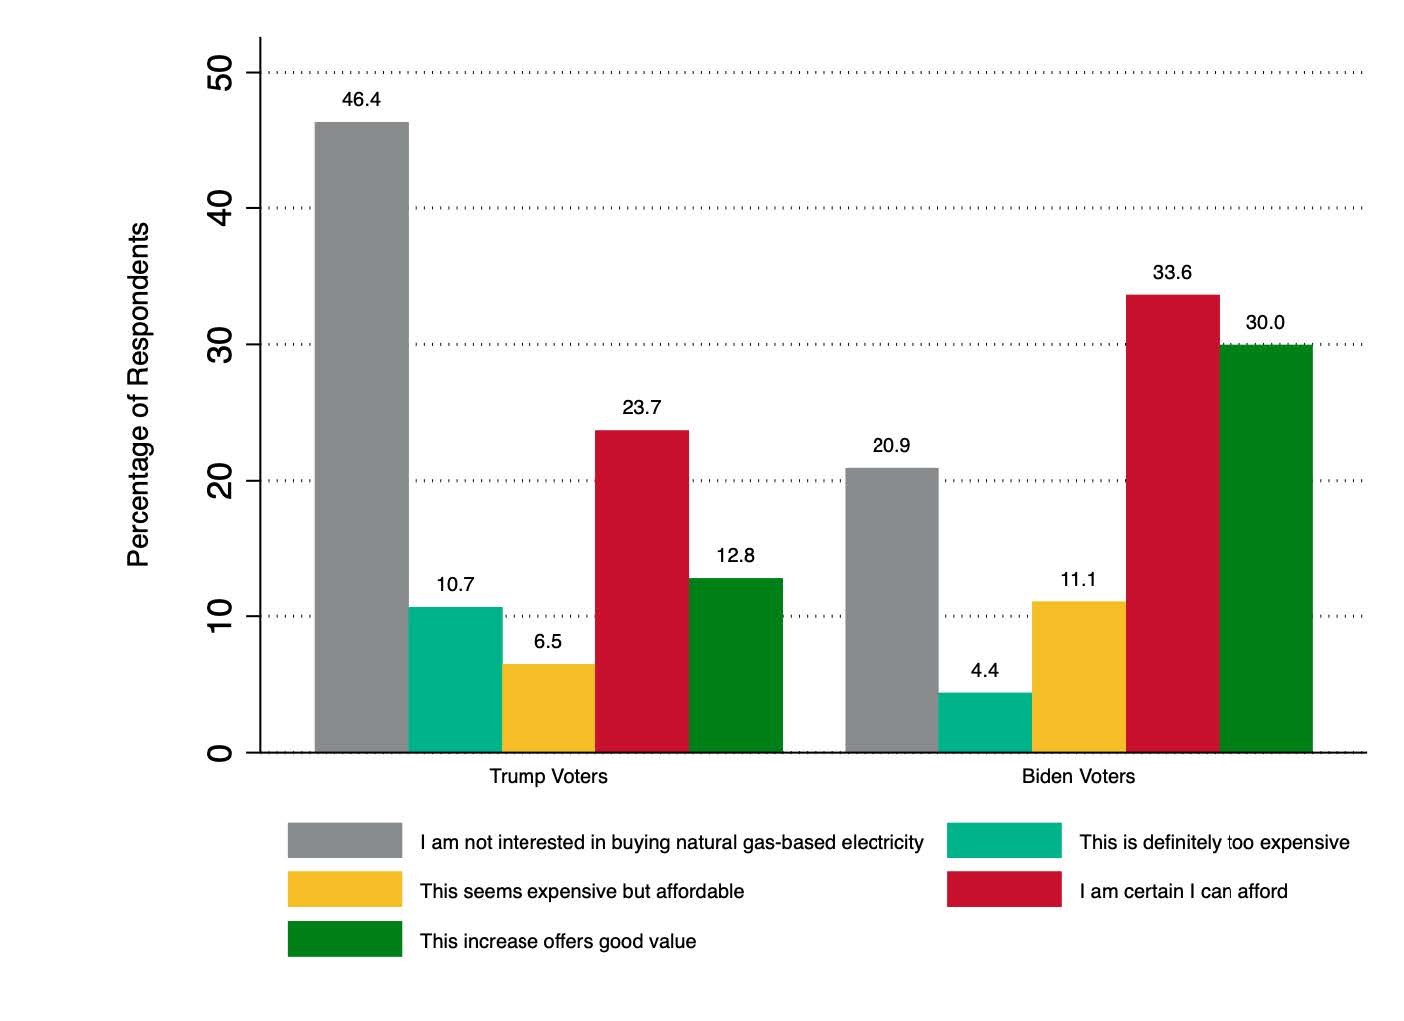 Image illustrating results for '$5 increase in monthly electricity bill for natural gas-based electricity produced without venting and flaring' question